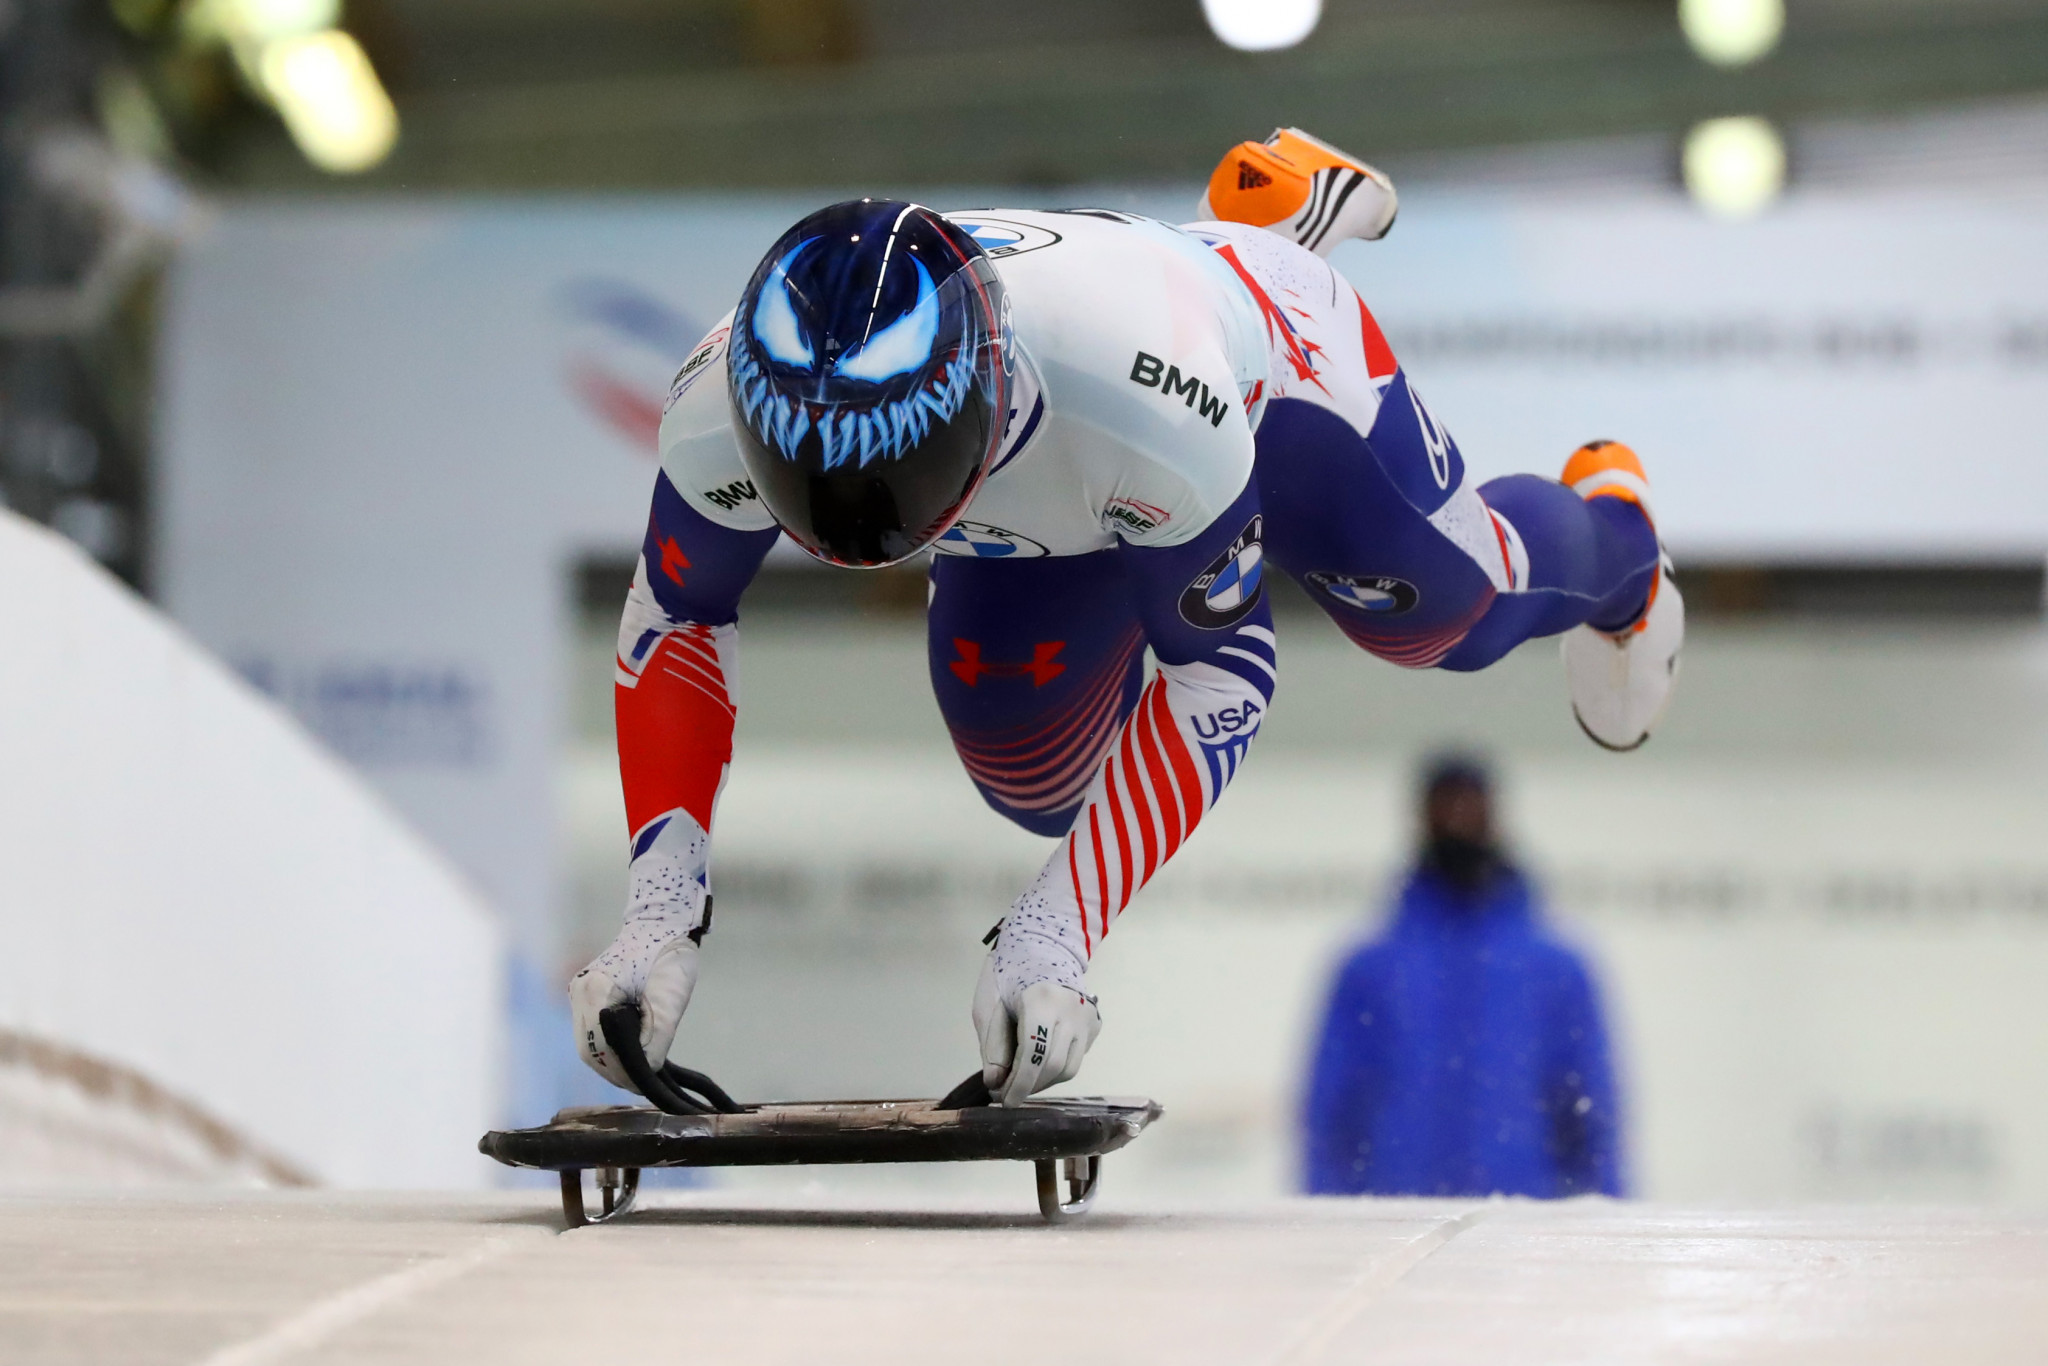 New iced start house used as Florian and Ro win USA Skeleton Push Championships